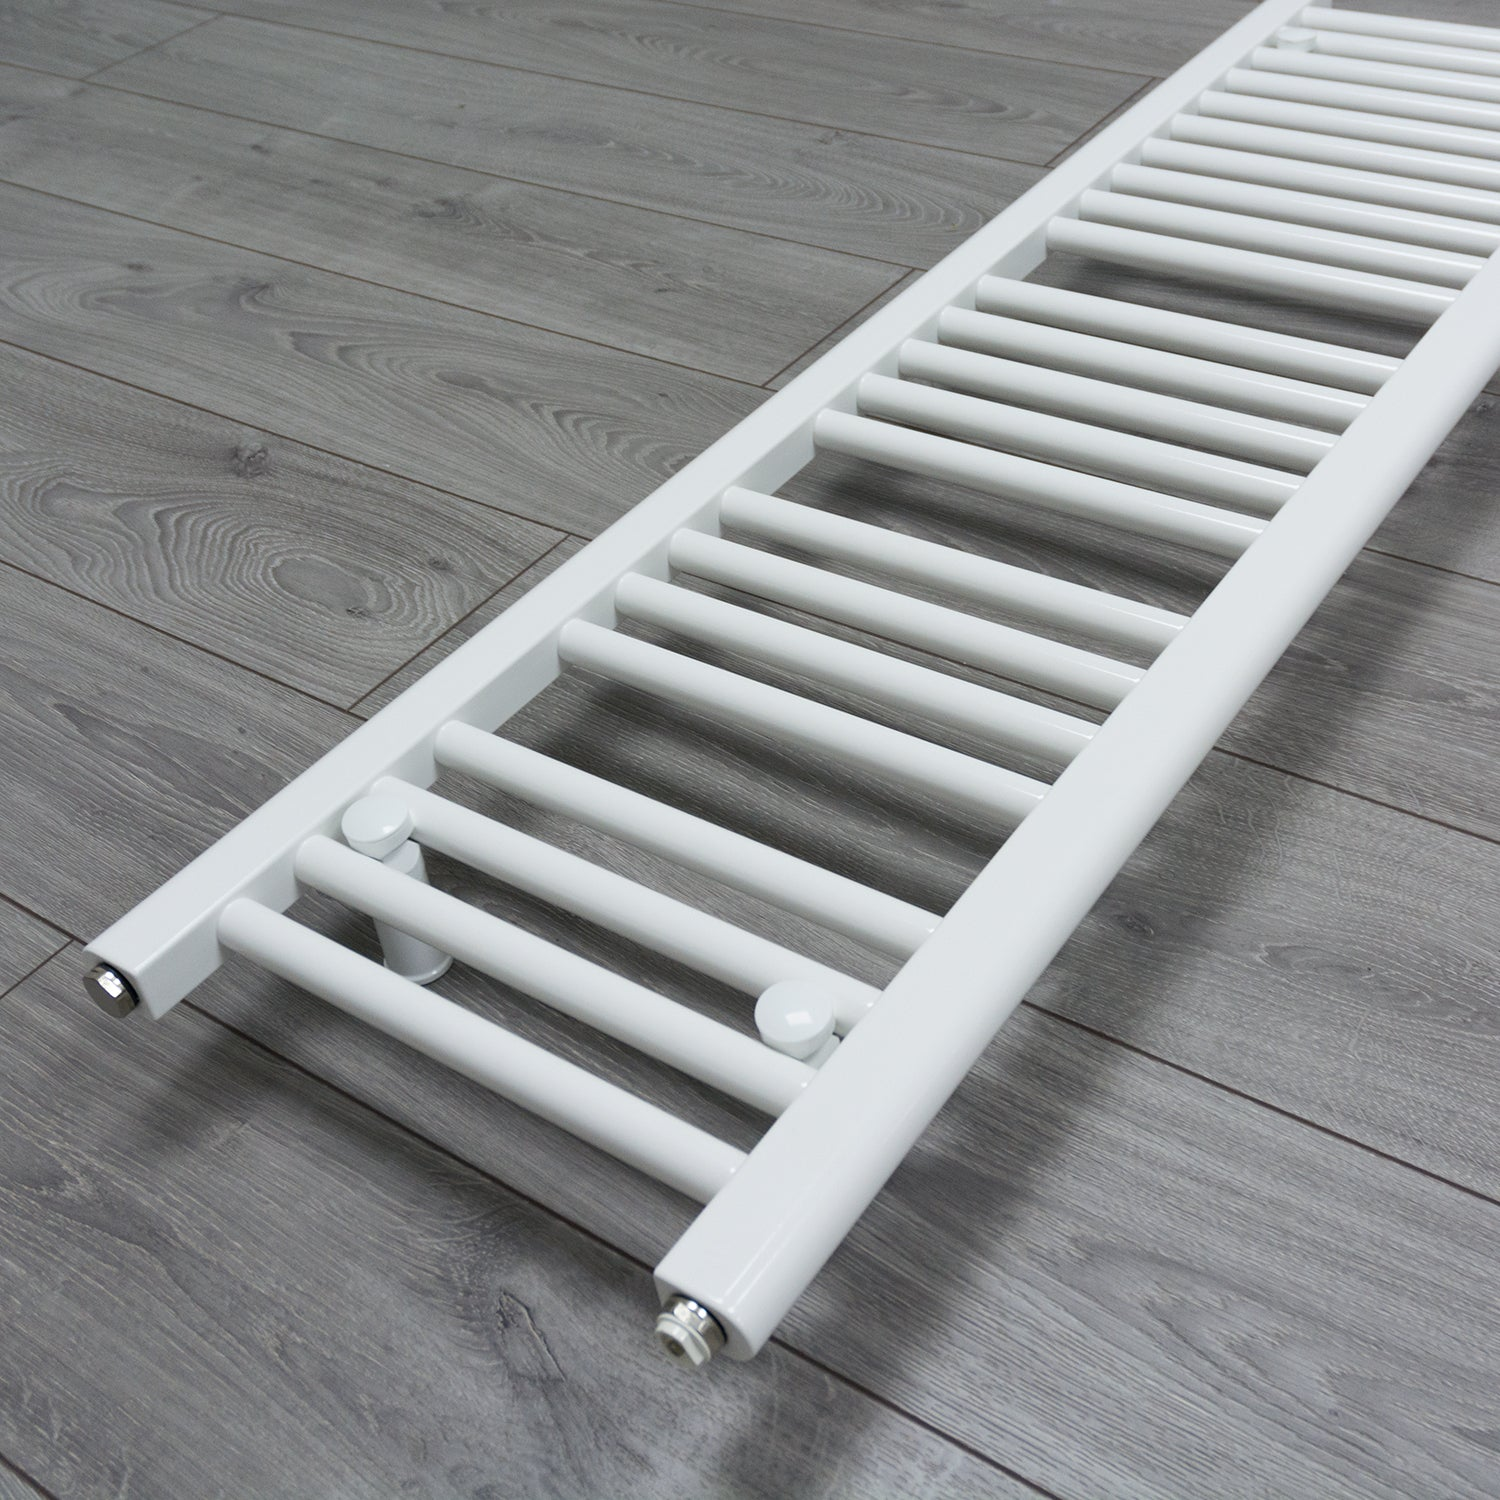 350mm x 1800mm White Heated Towel Rail Radiator Close Up Image